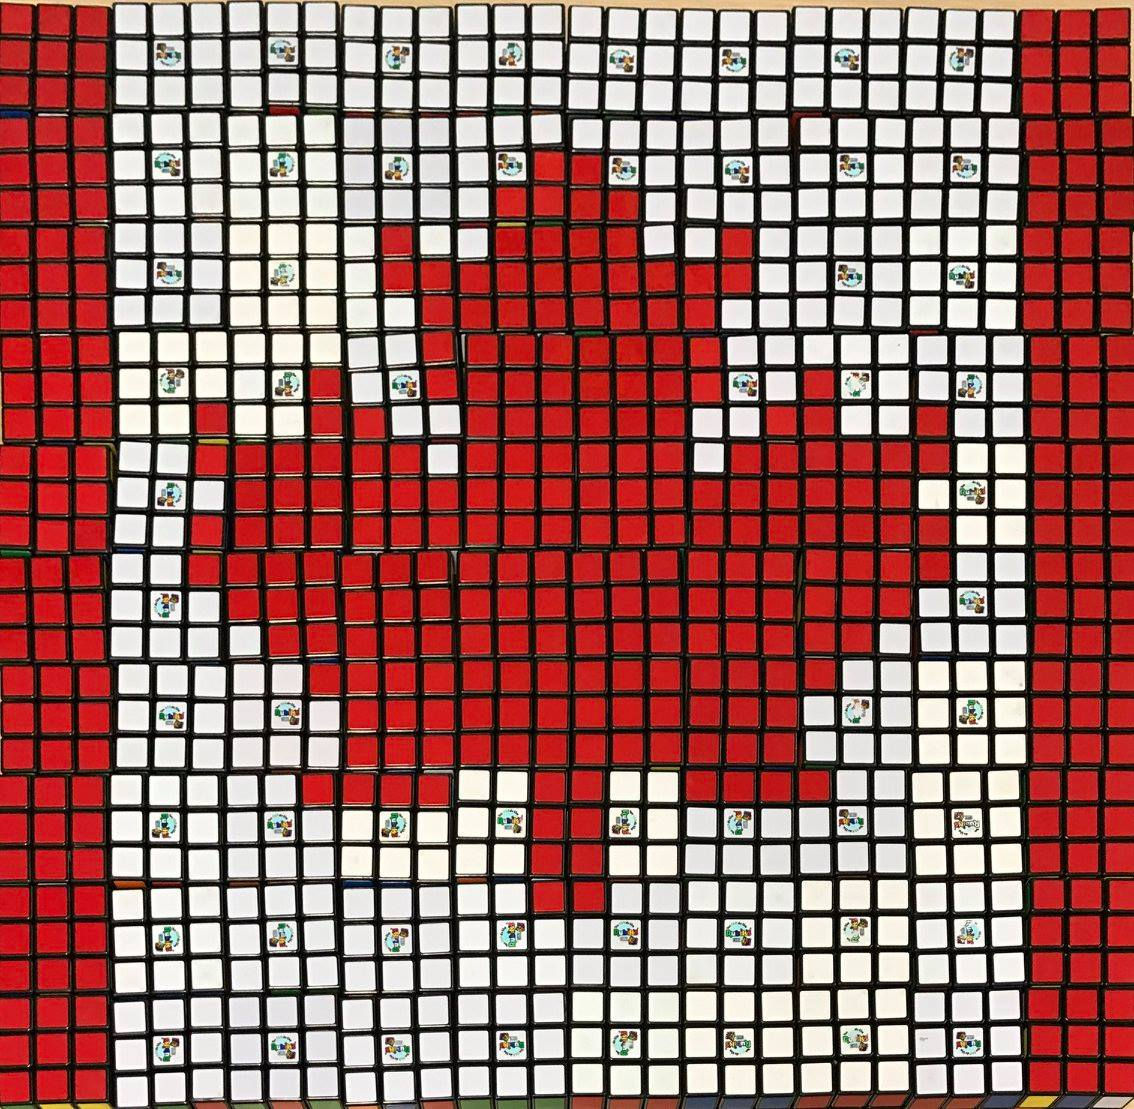 Today we celebrate Canada Day - Mosaic made by students at St James Middle School in Myrtle Beach, SC with 100 Rubik's Cubes #HappyCanadaDay #RubiksCubeMosaic @HCSInfo https://t.co/BvuoQ6yUpy